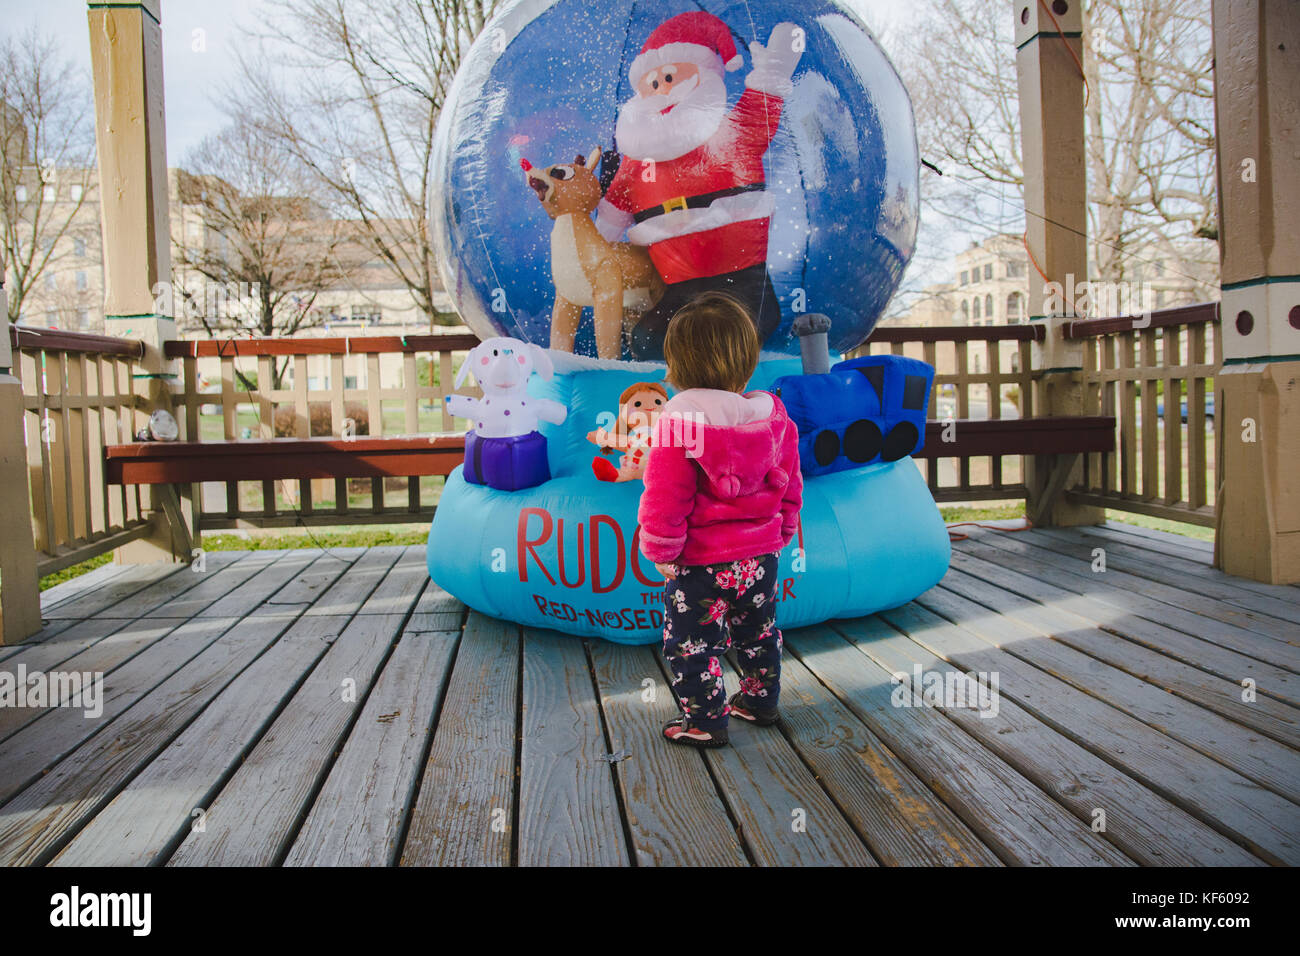 Toddler walking toward Christmas or holiday displays. - Stock Image